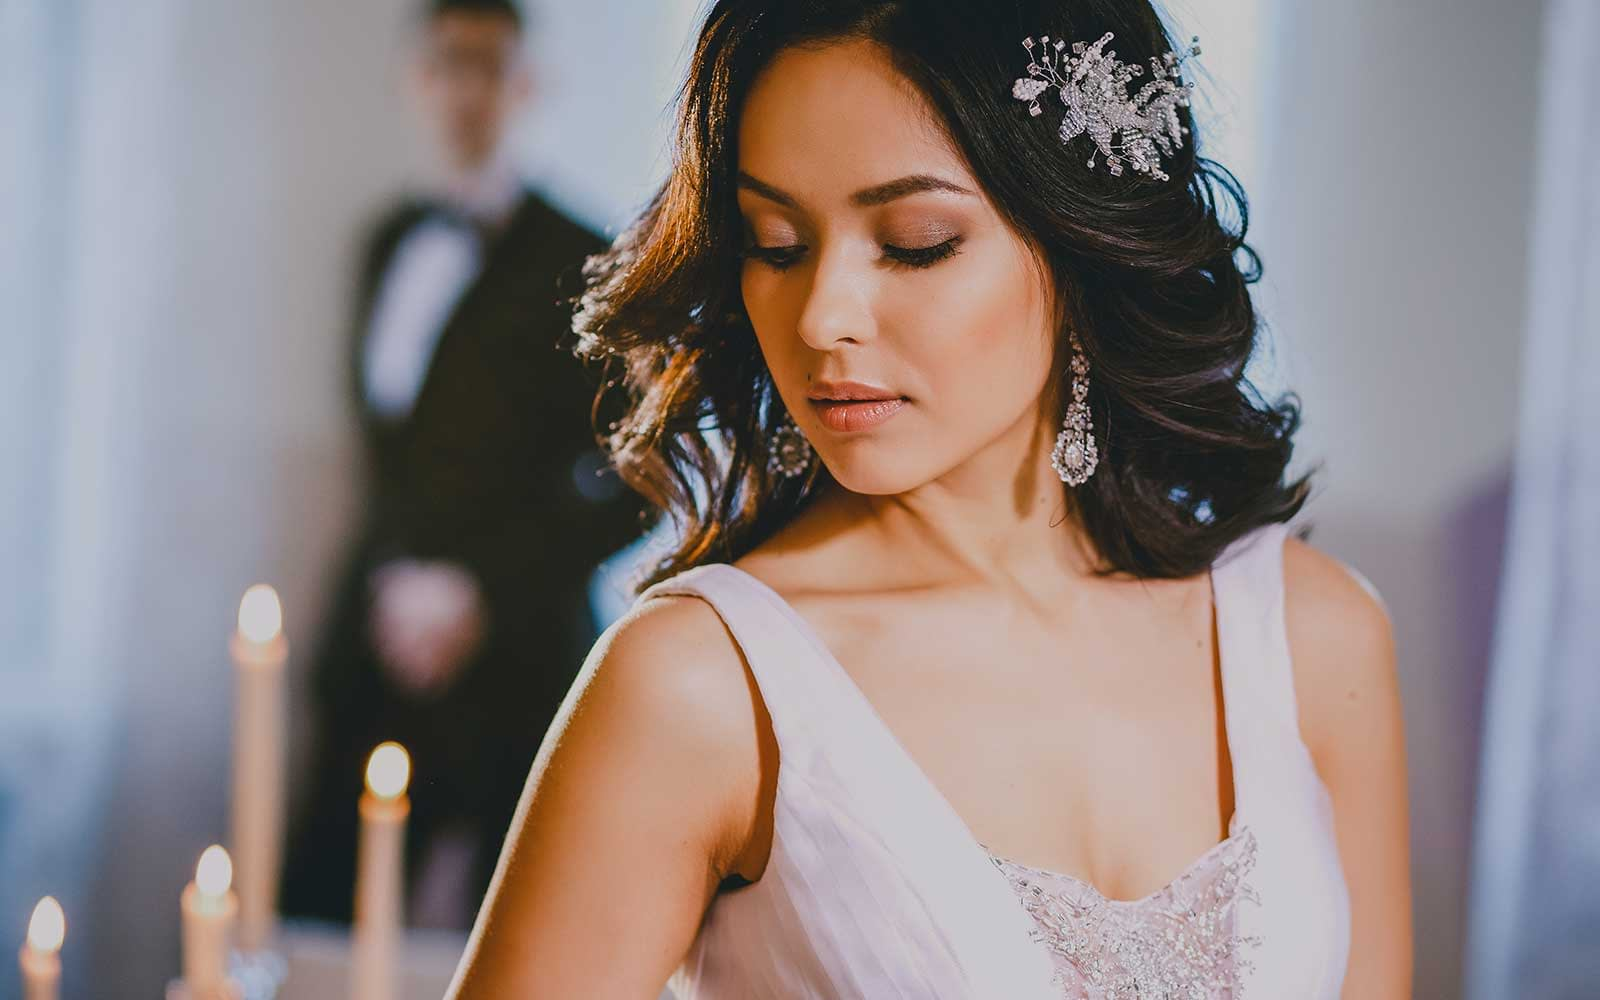 Elegant Bride with White Dress (After Applying Preset)